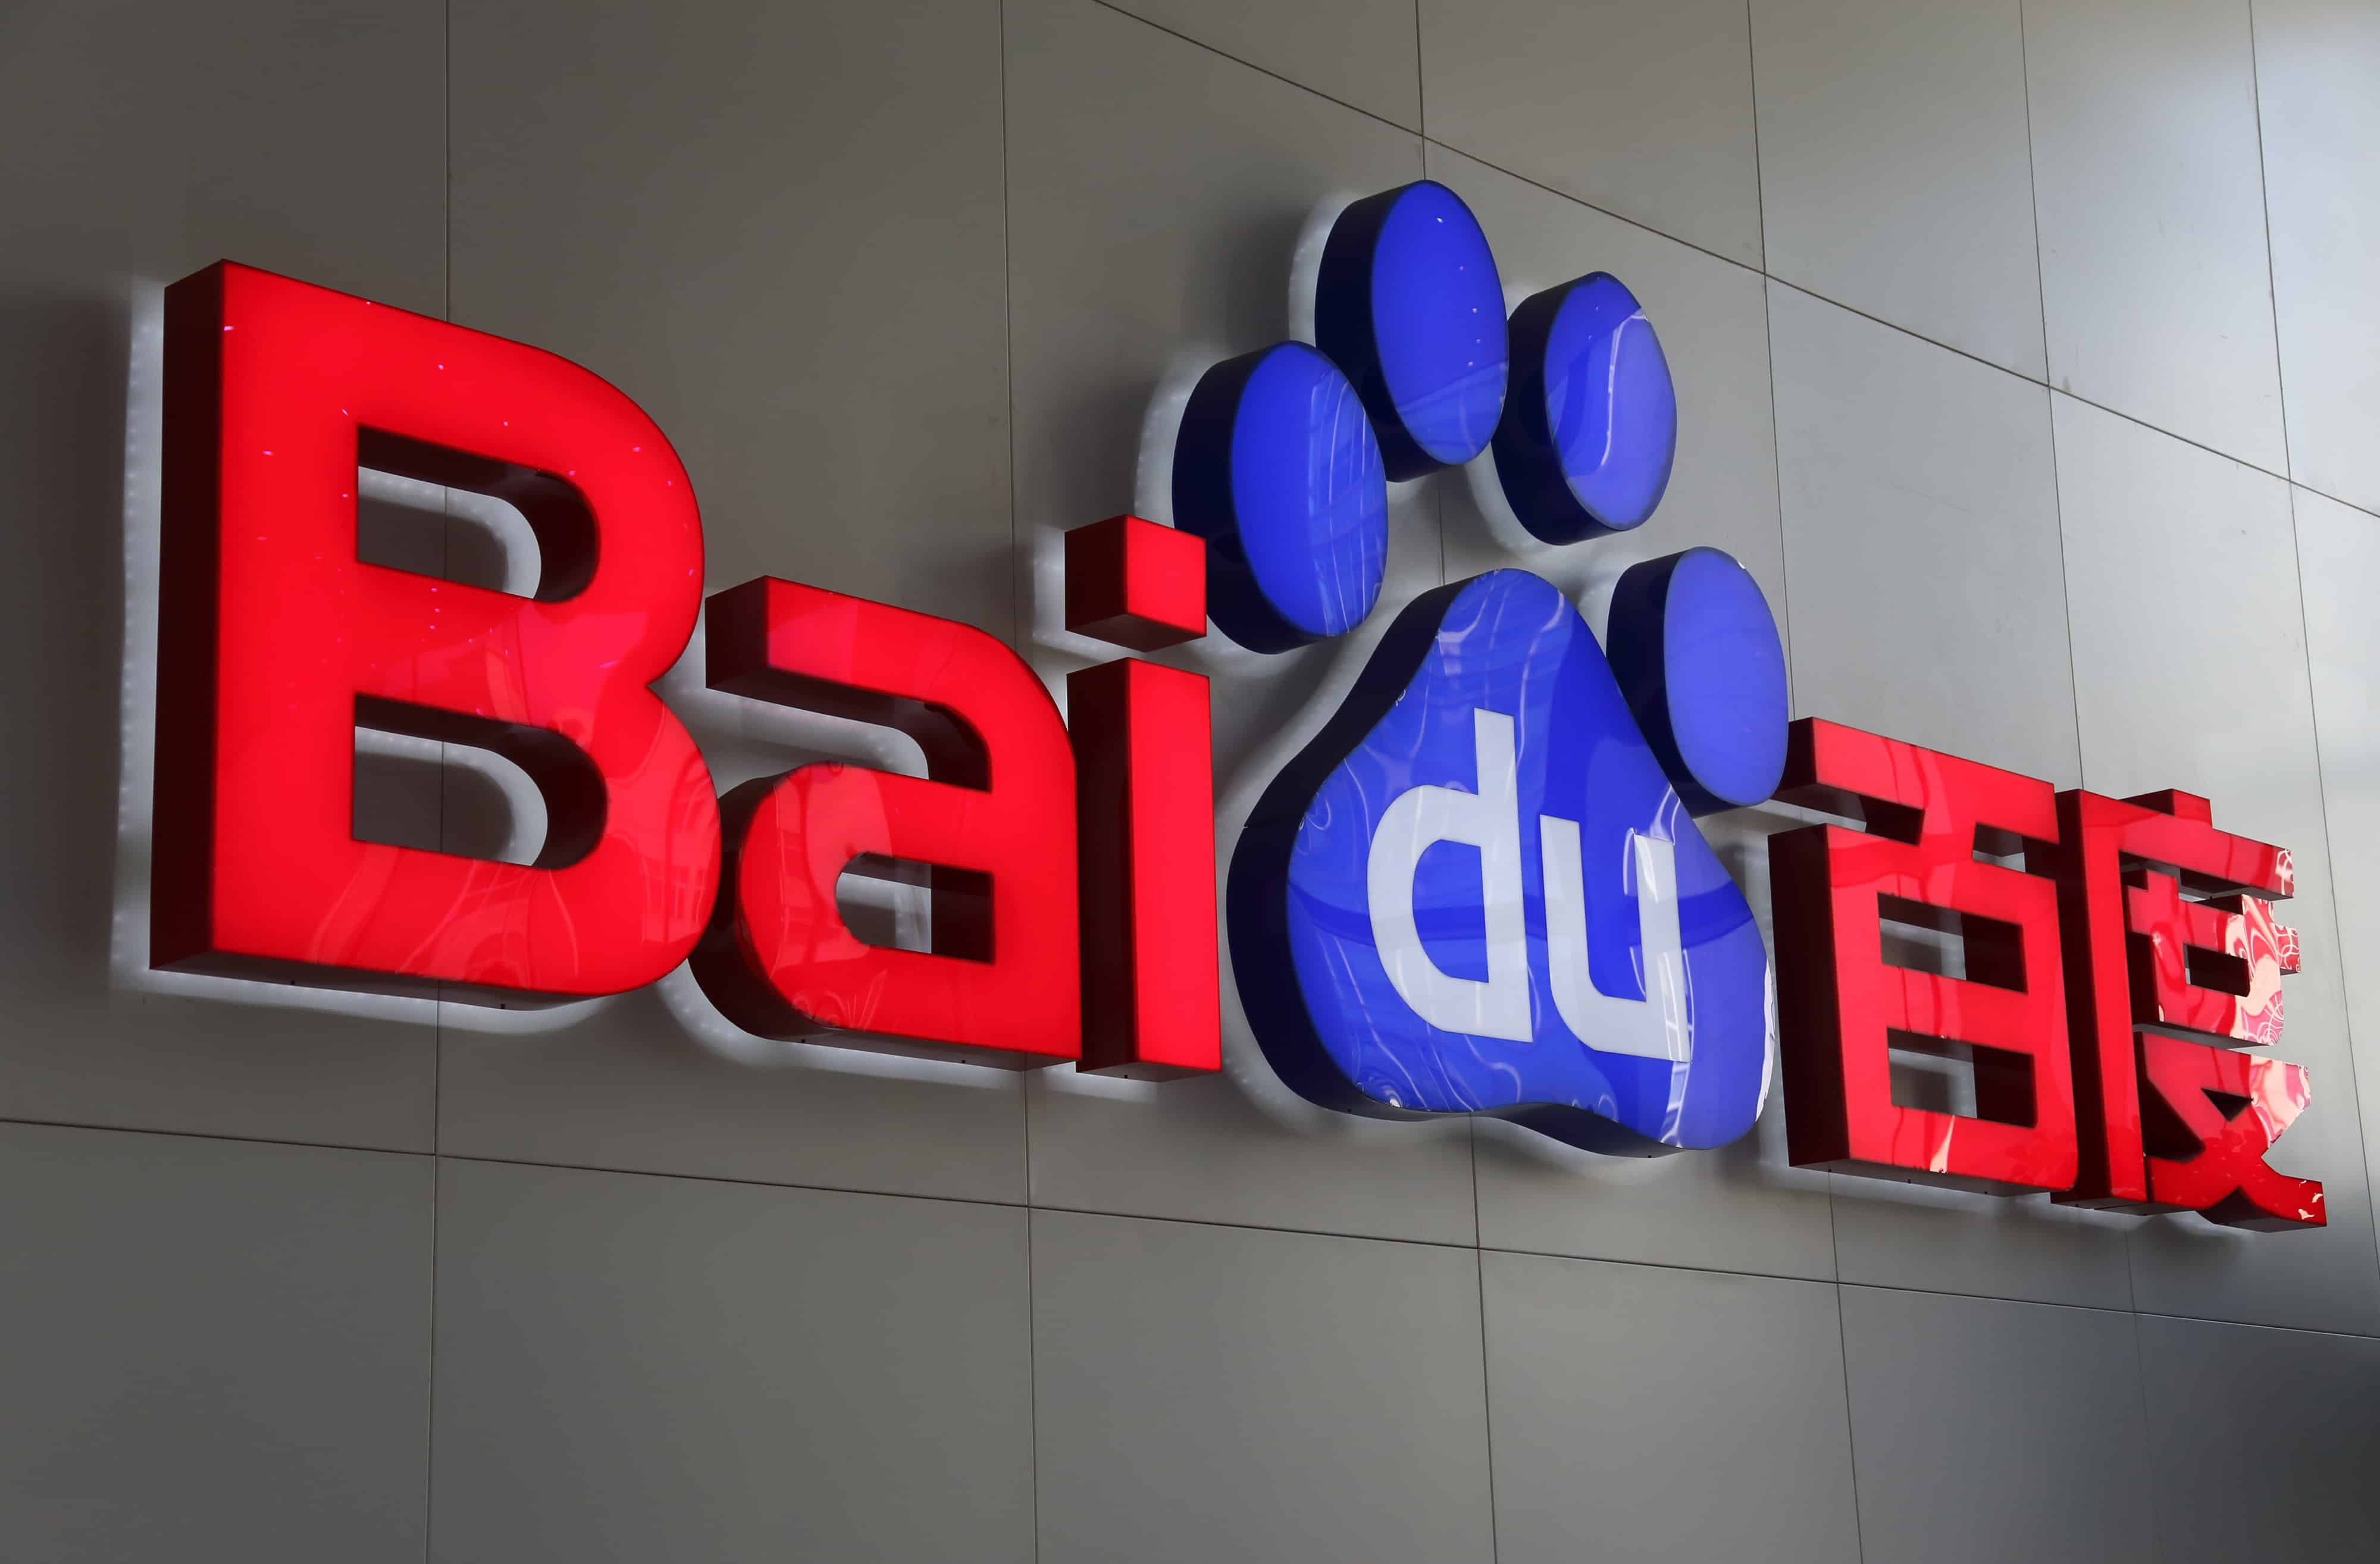 Baidu Records Net Loss Of $47.51 Million, First Loss Since 2015